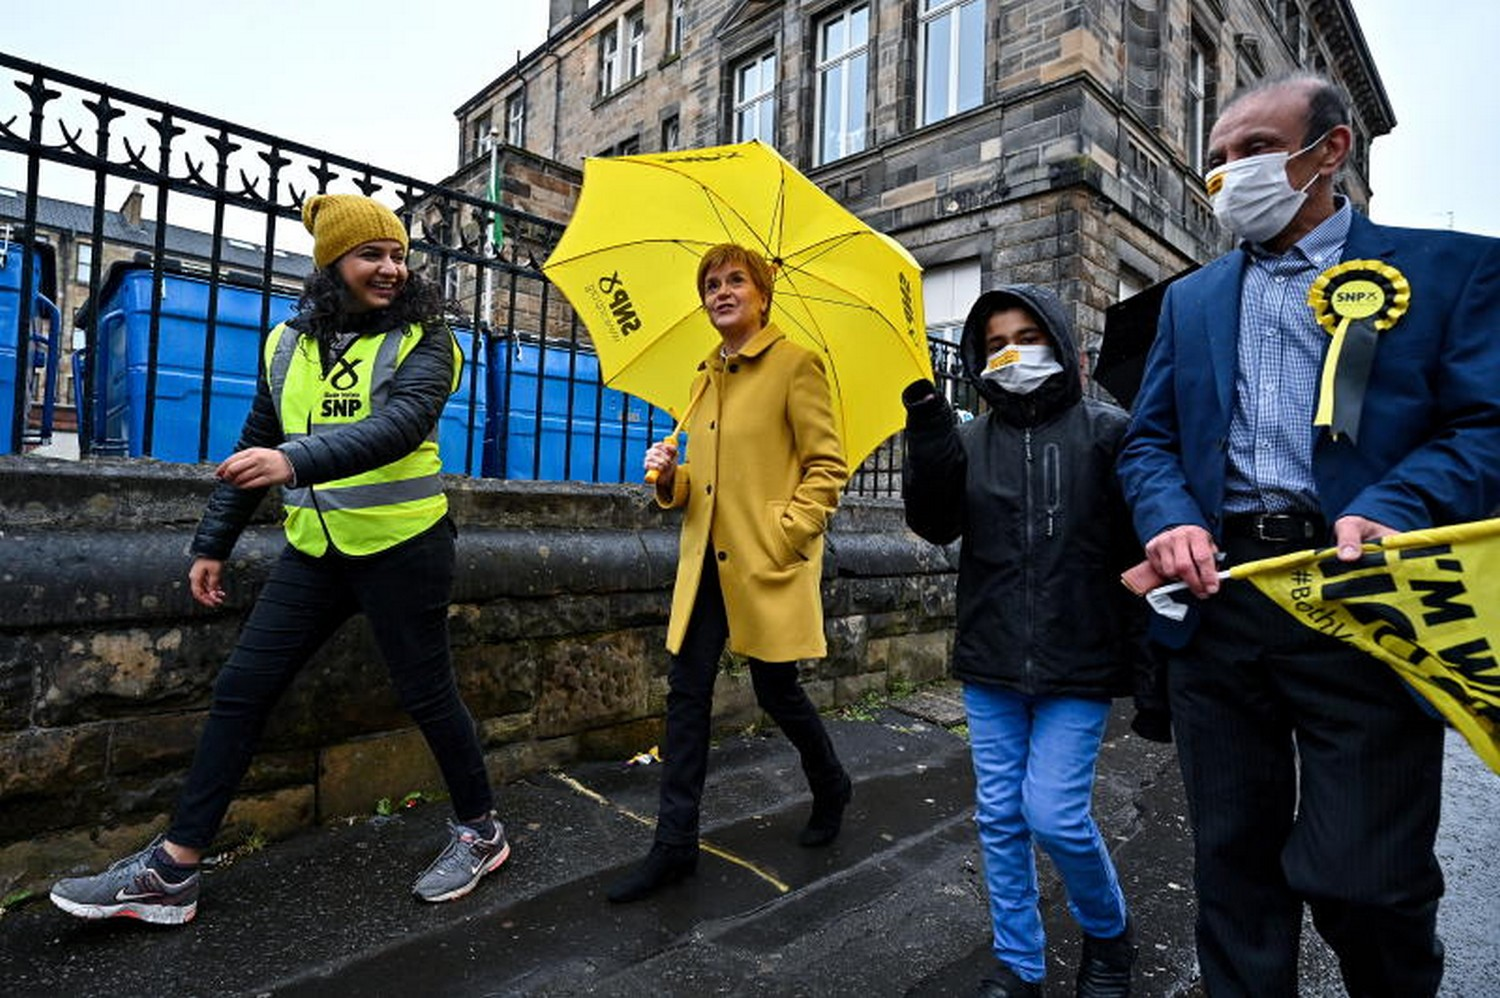 Scotland's First Minister Nicola Sturgeon and candidate Roza Salih meet voters at Annette Street School polling station as Scotland's parliamentary election voting began,   in Glasgow, on Thursday. (Photo: Reuters)